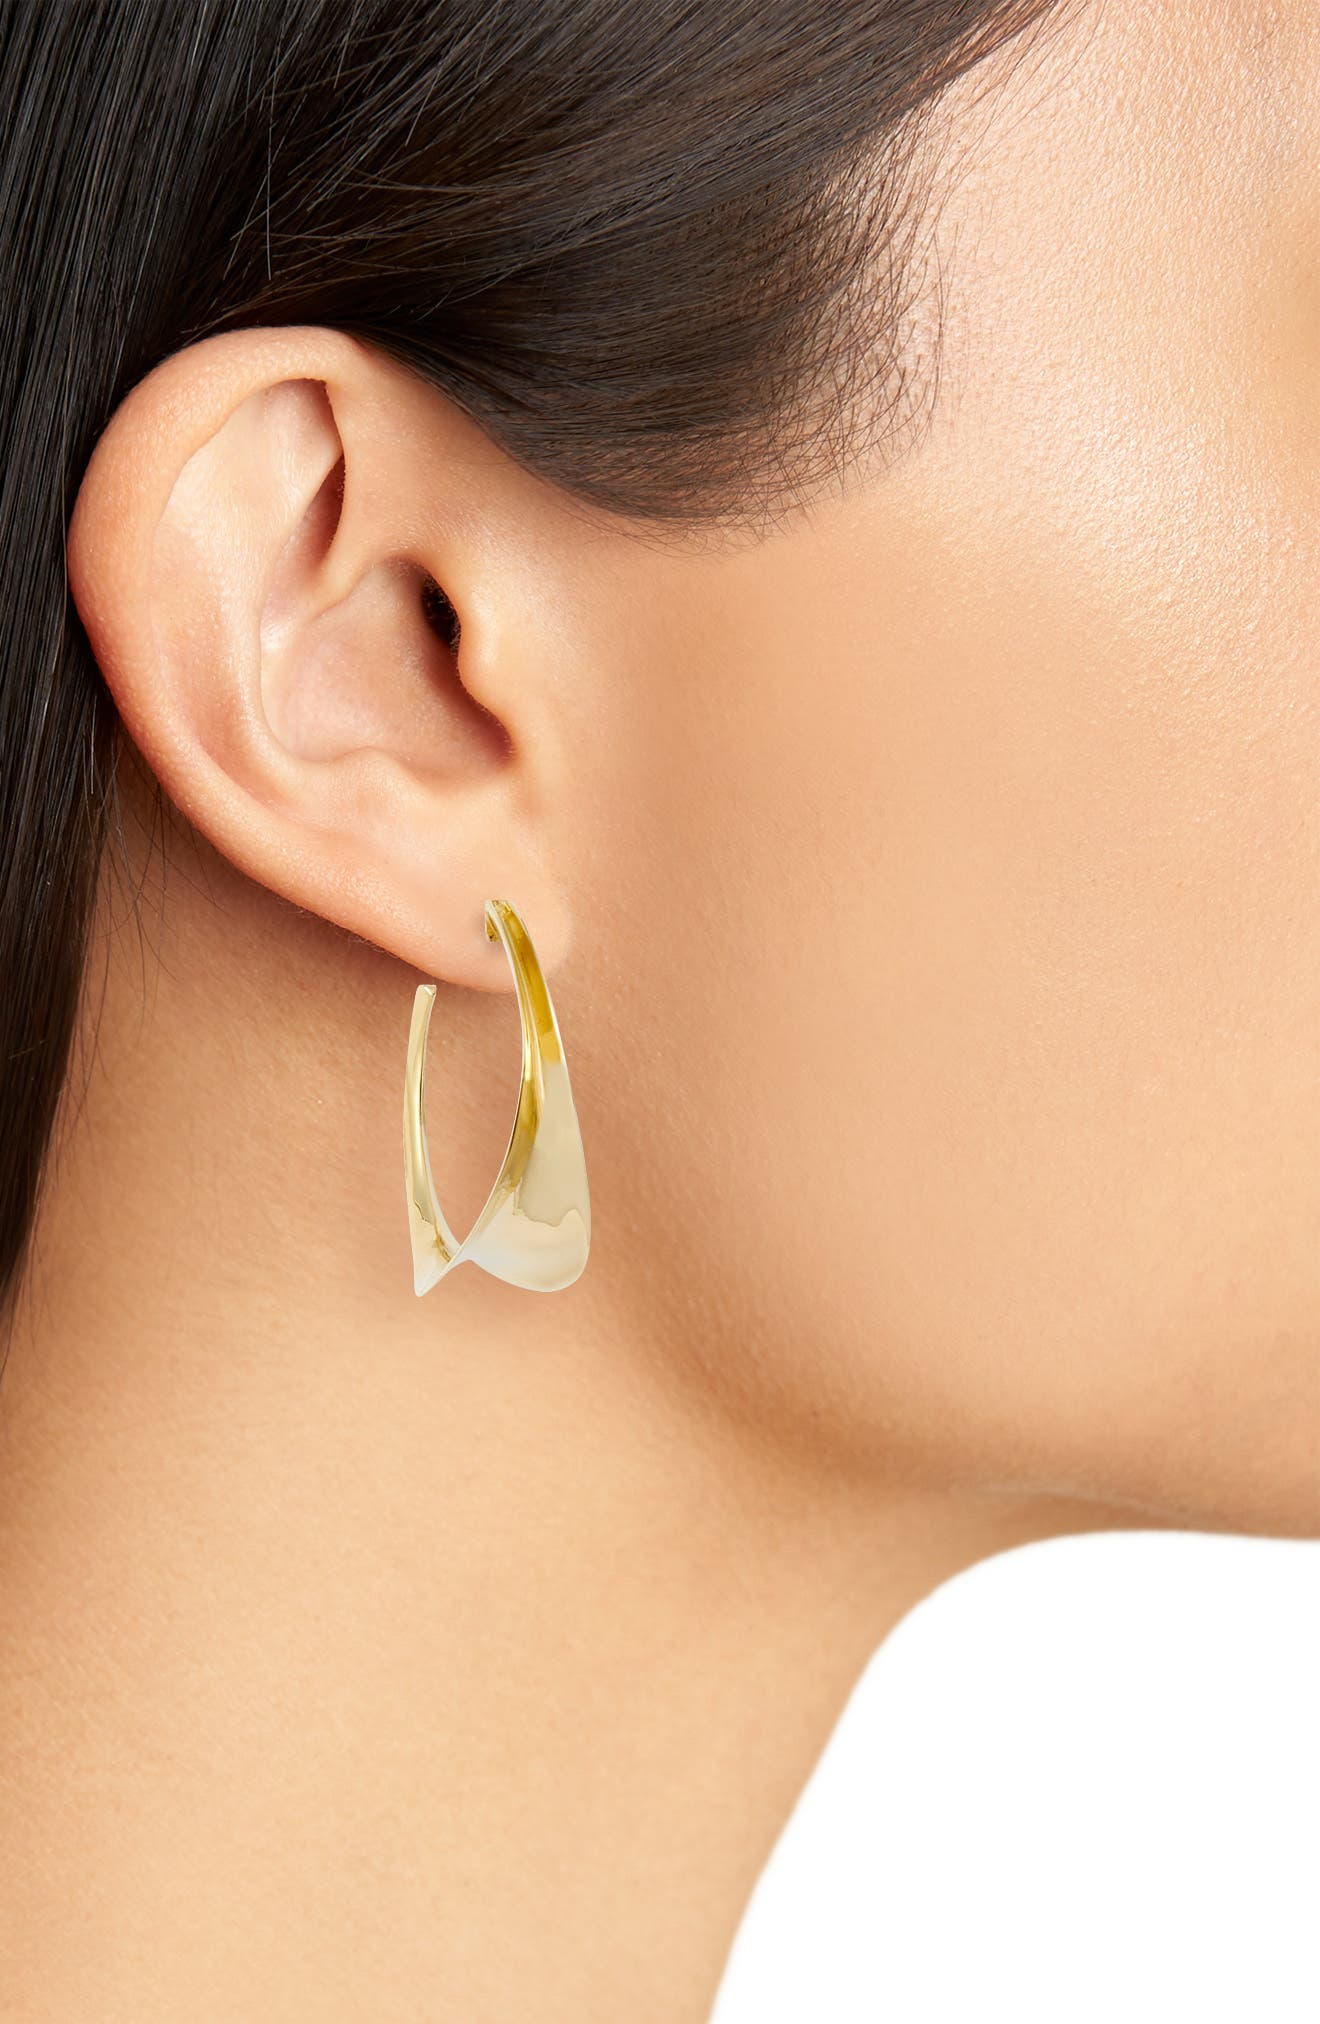 Concave Medium Hoop Earrings,                             Alternate thumbnail 2, color,                             YELLOW GOLD